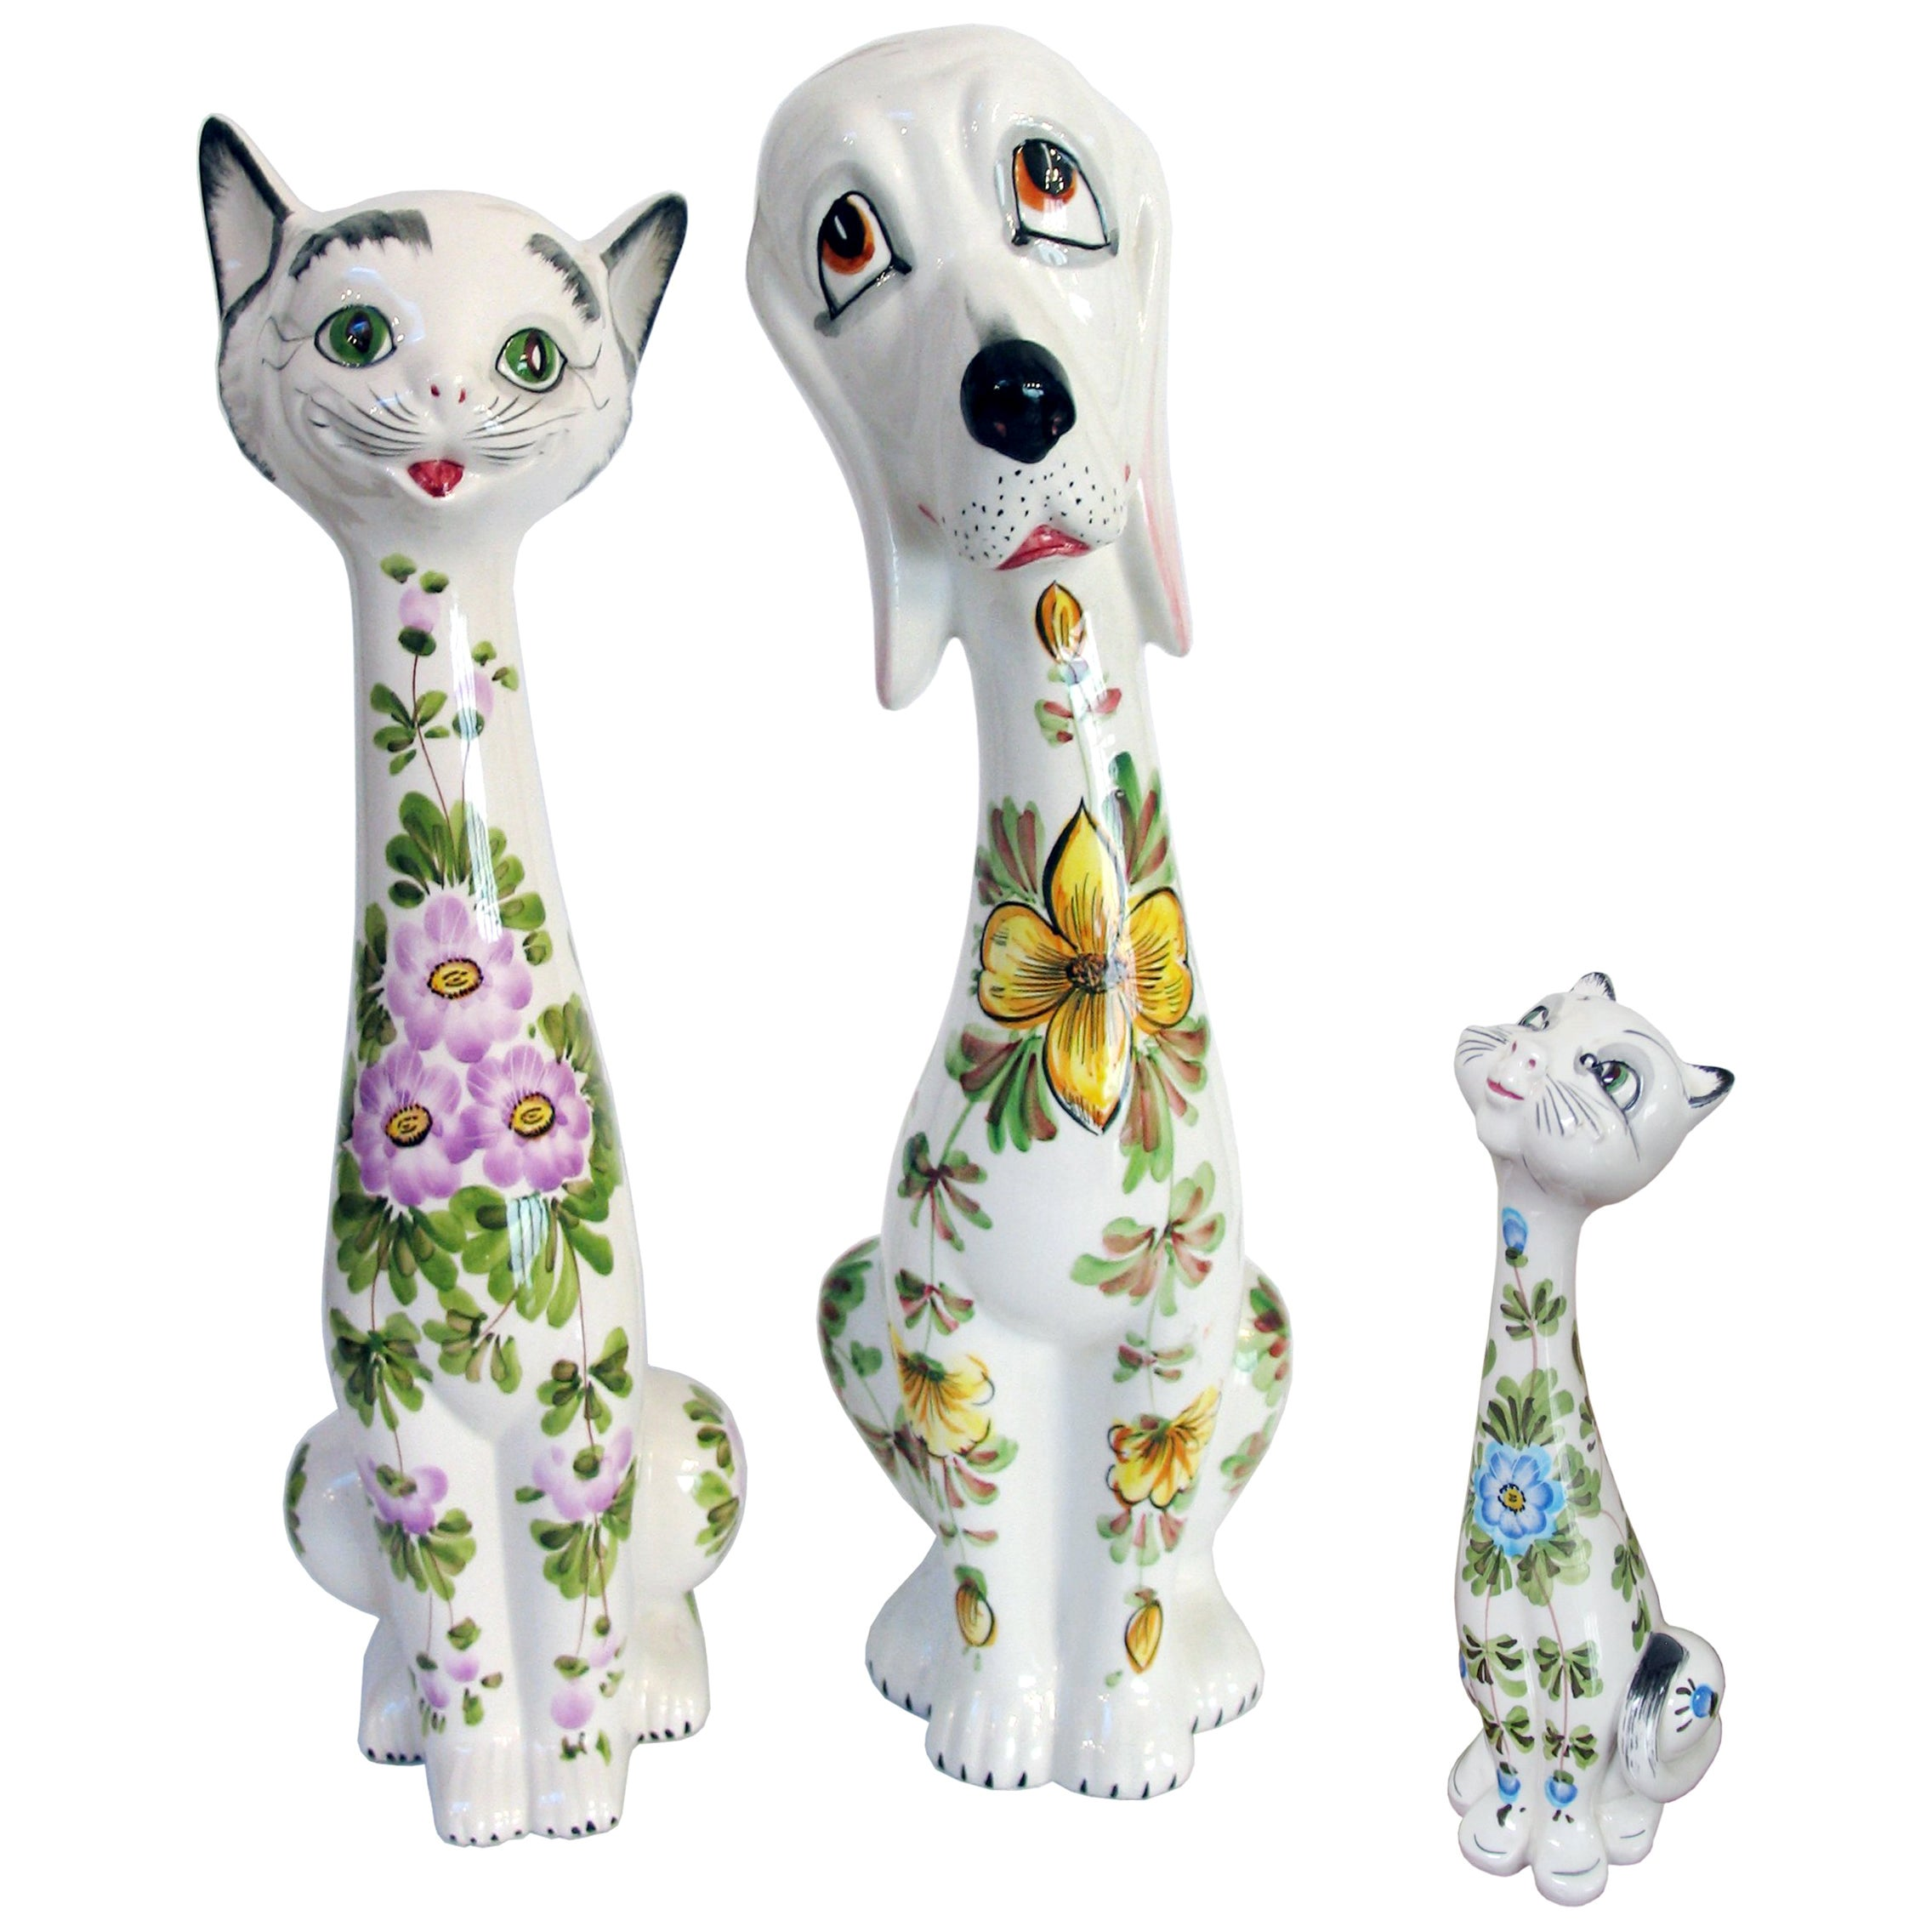 Mid-Century Modern Ceramic Cat Figurines and a Dog, Italy, 1970s